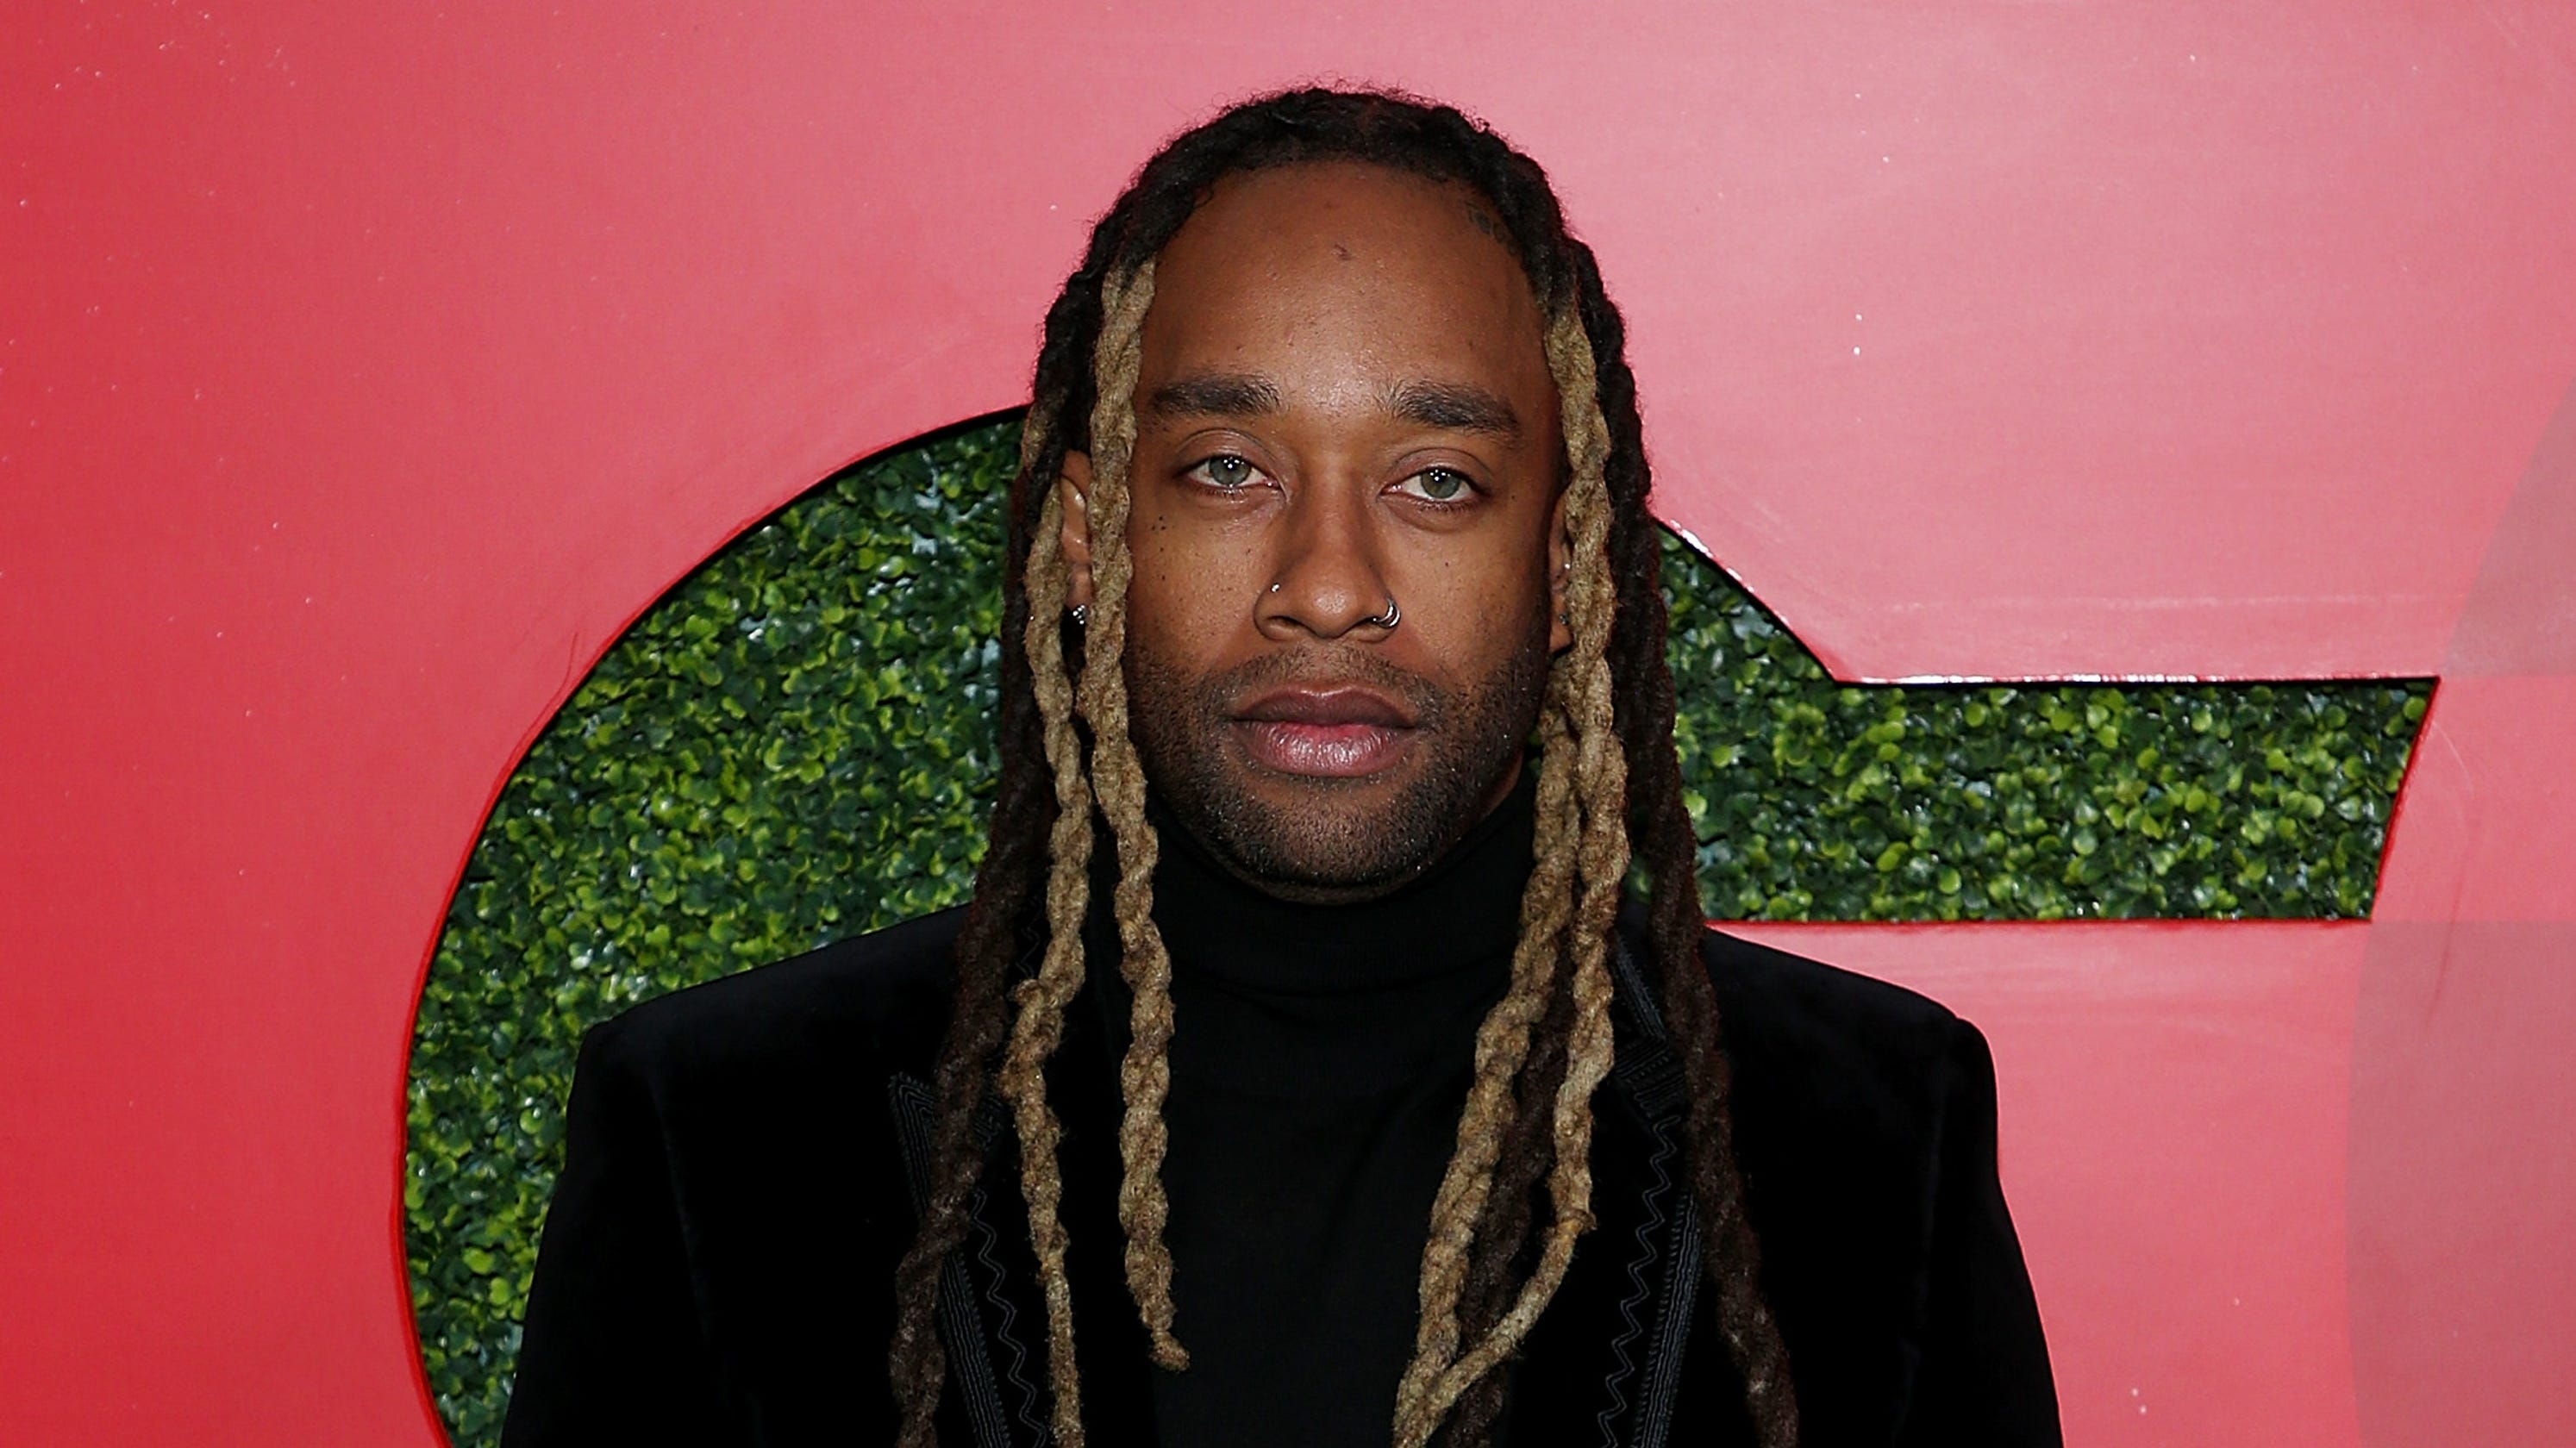 Ty Dolla $ign, singer and rapper, indicted on felony drug charges